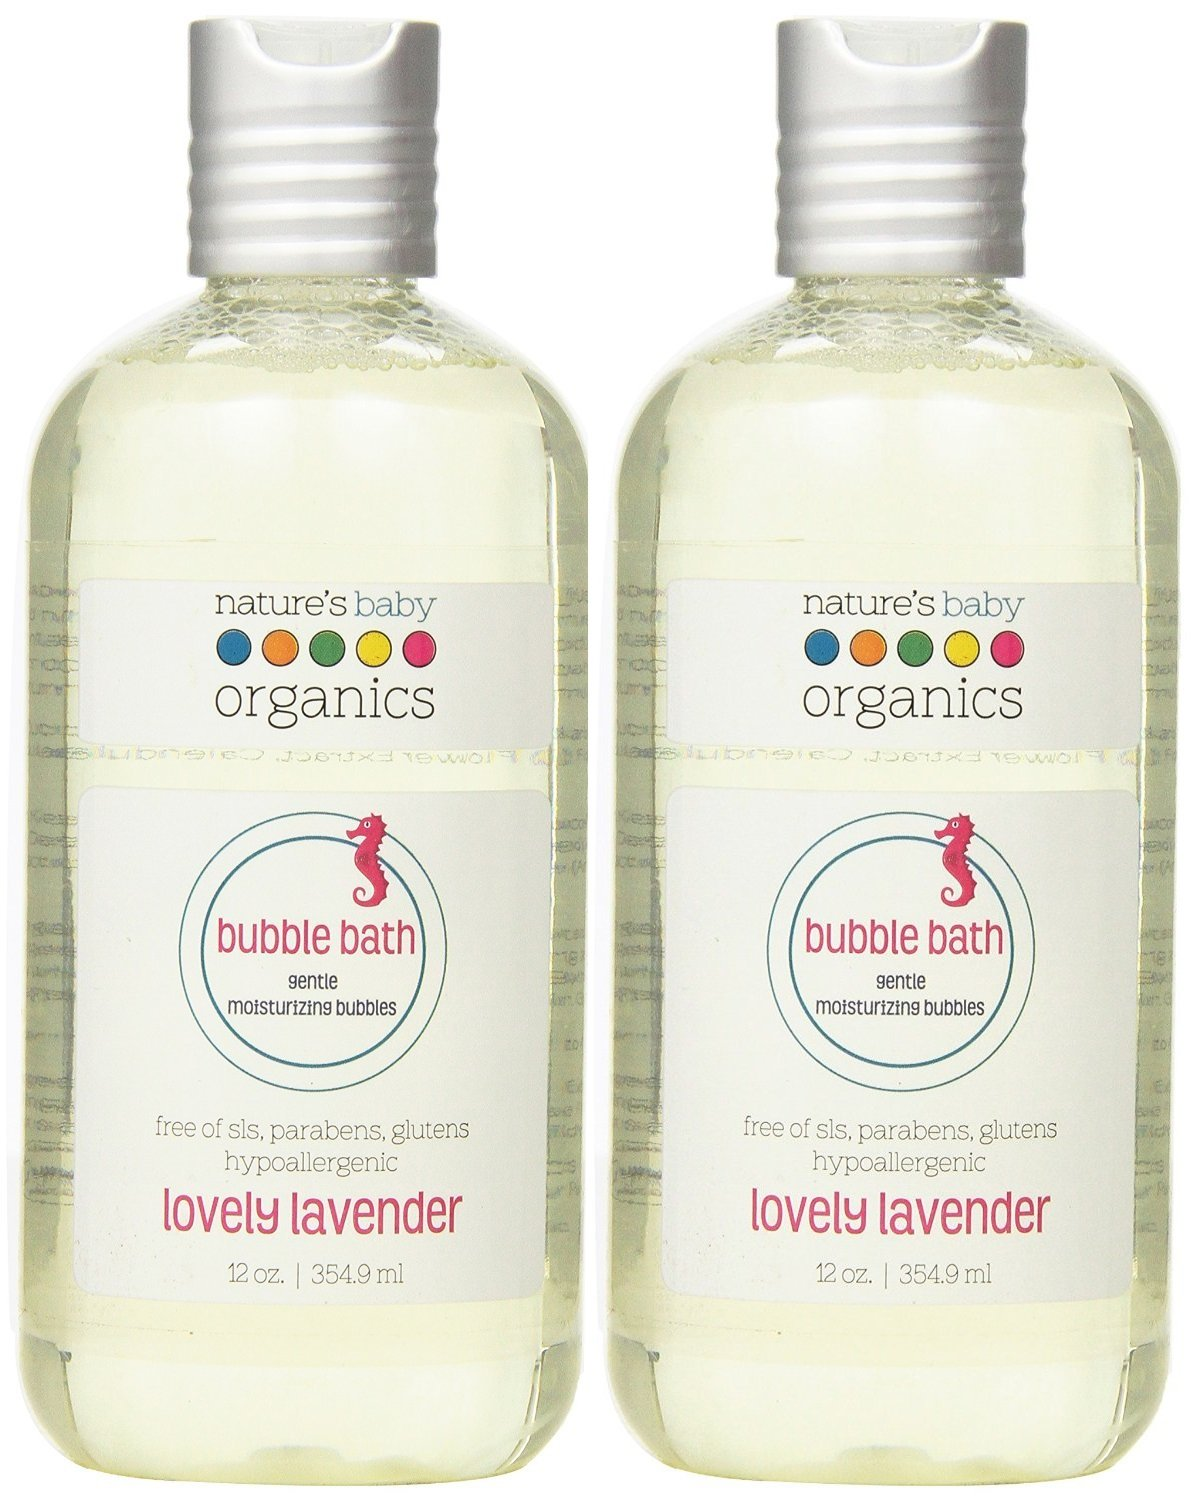 Nature's Baby Organics Moisturizing Bubble Bath, Lovely Lavender, 12 oz Pack of 2 - Made with Organic Ingredients, Cruelty Free, Hypoallergenic, No Parabens or Glutens by Nature's Baby Organics